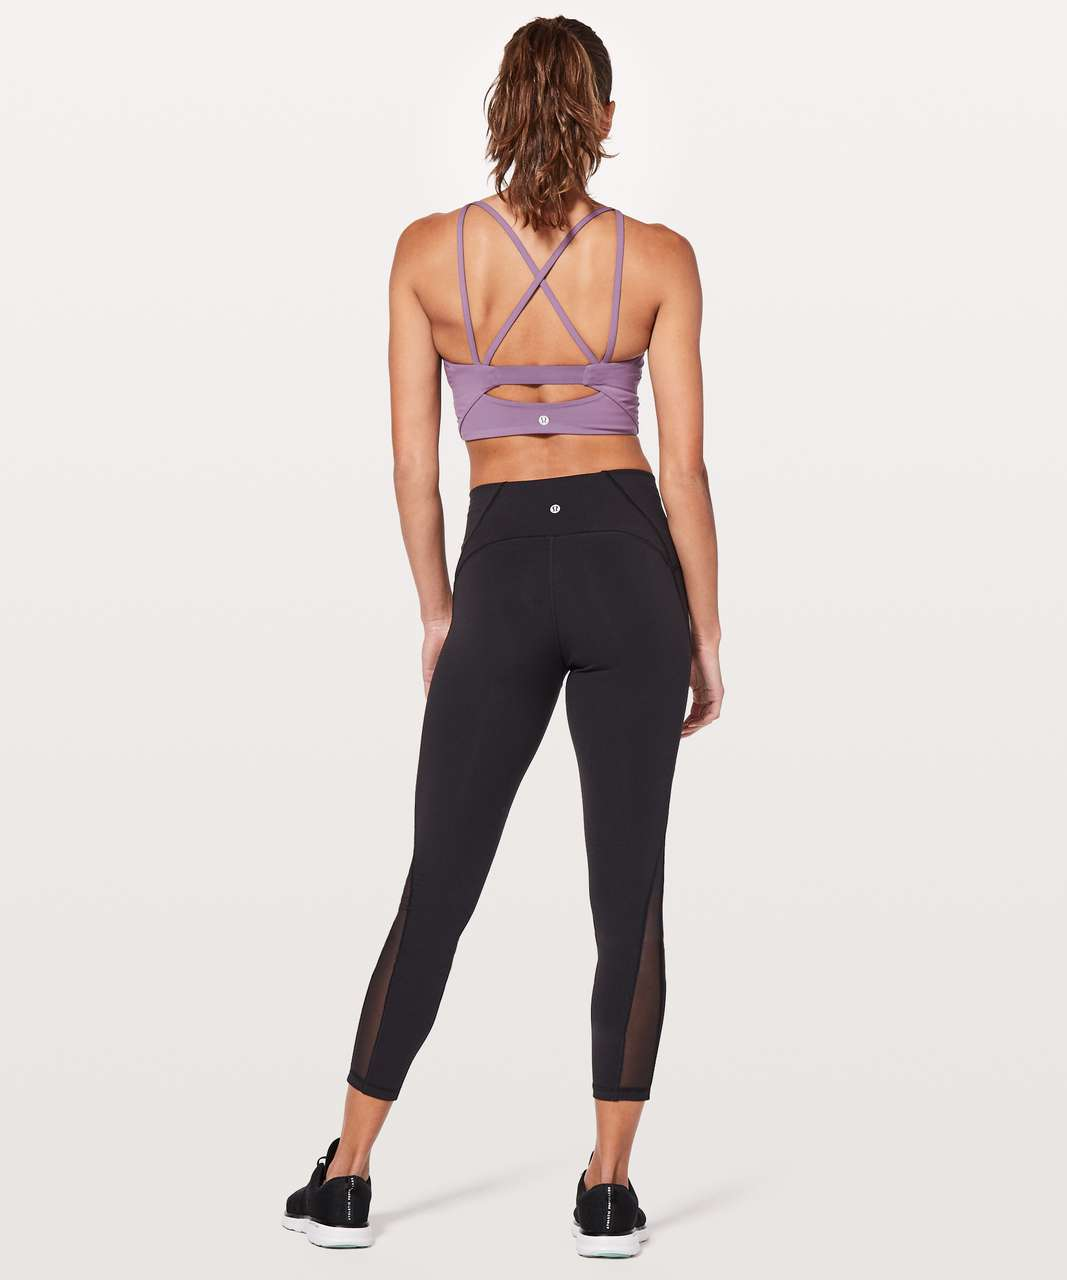 Lululemon Clip-In Long Line Bra - Smoked Mulberry